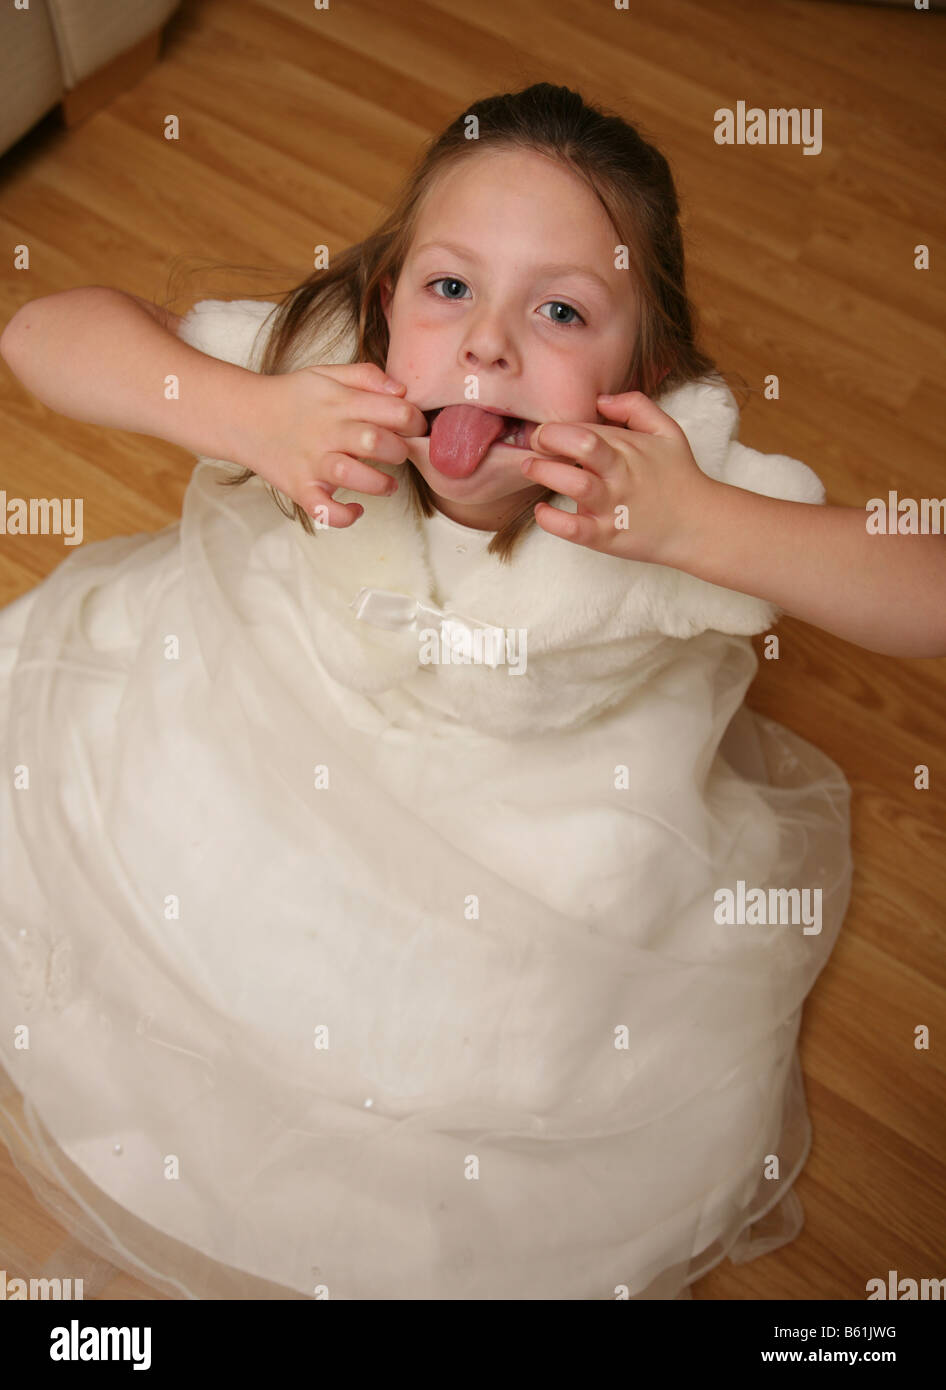 5 year old girl having a temper tantrum and poking out her tongue - Stock Image